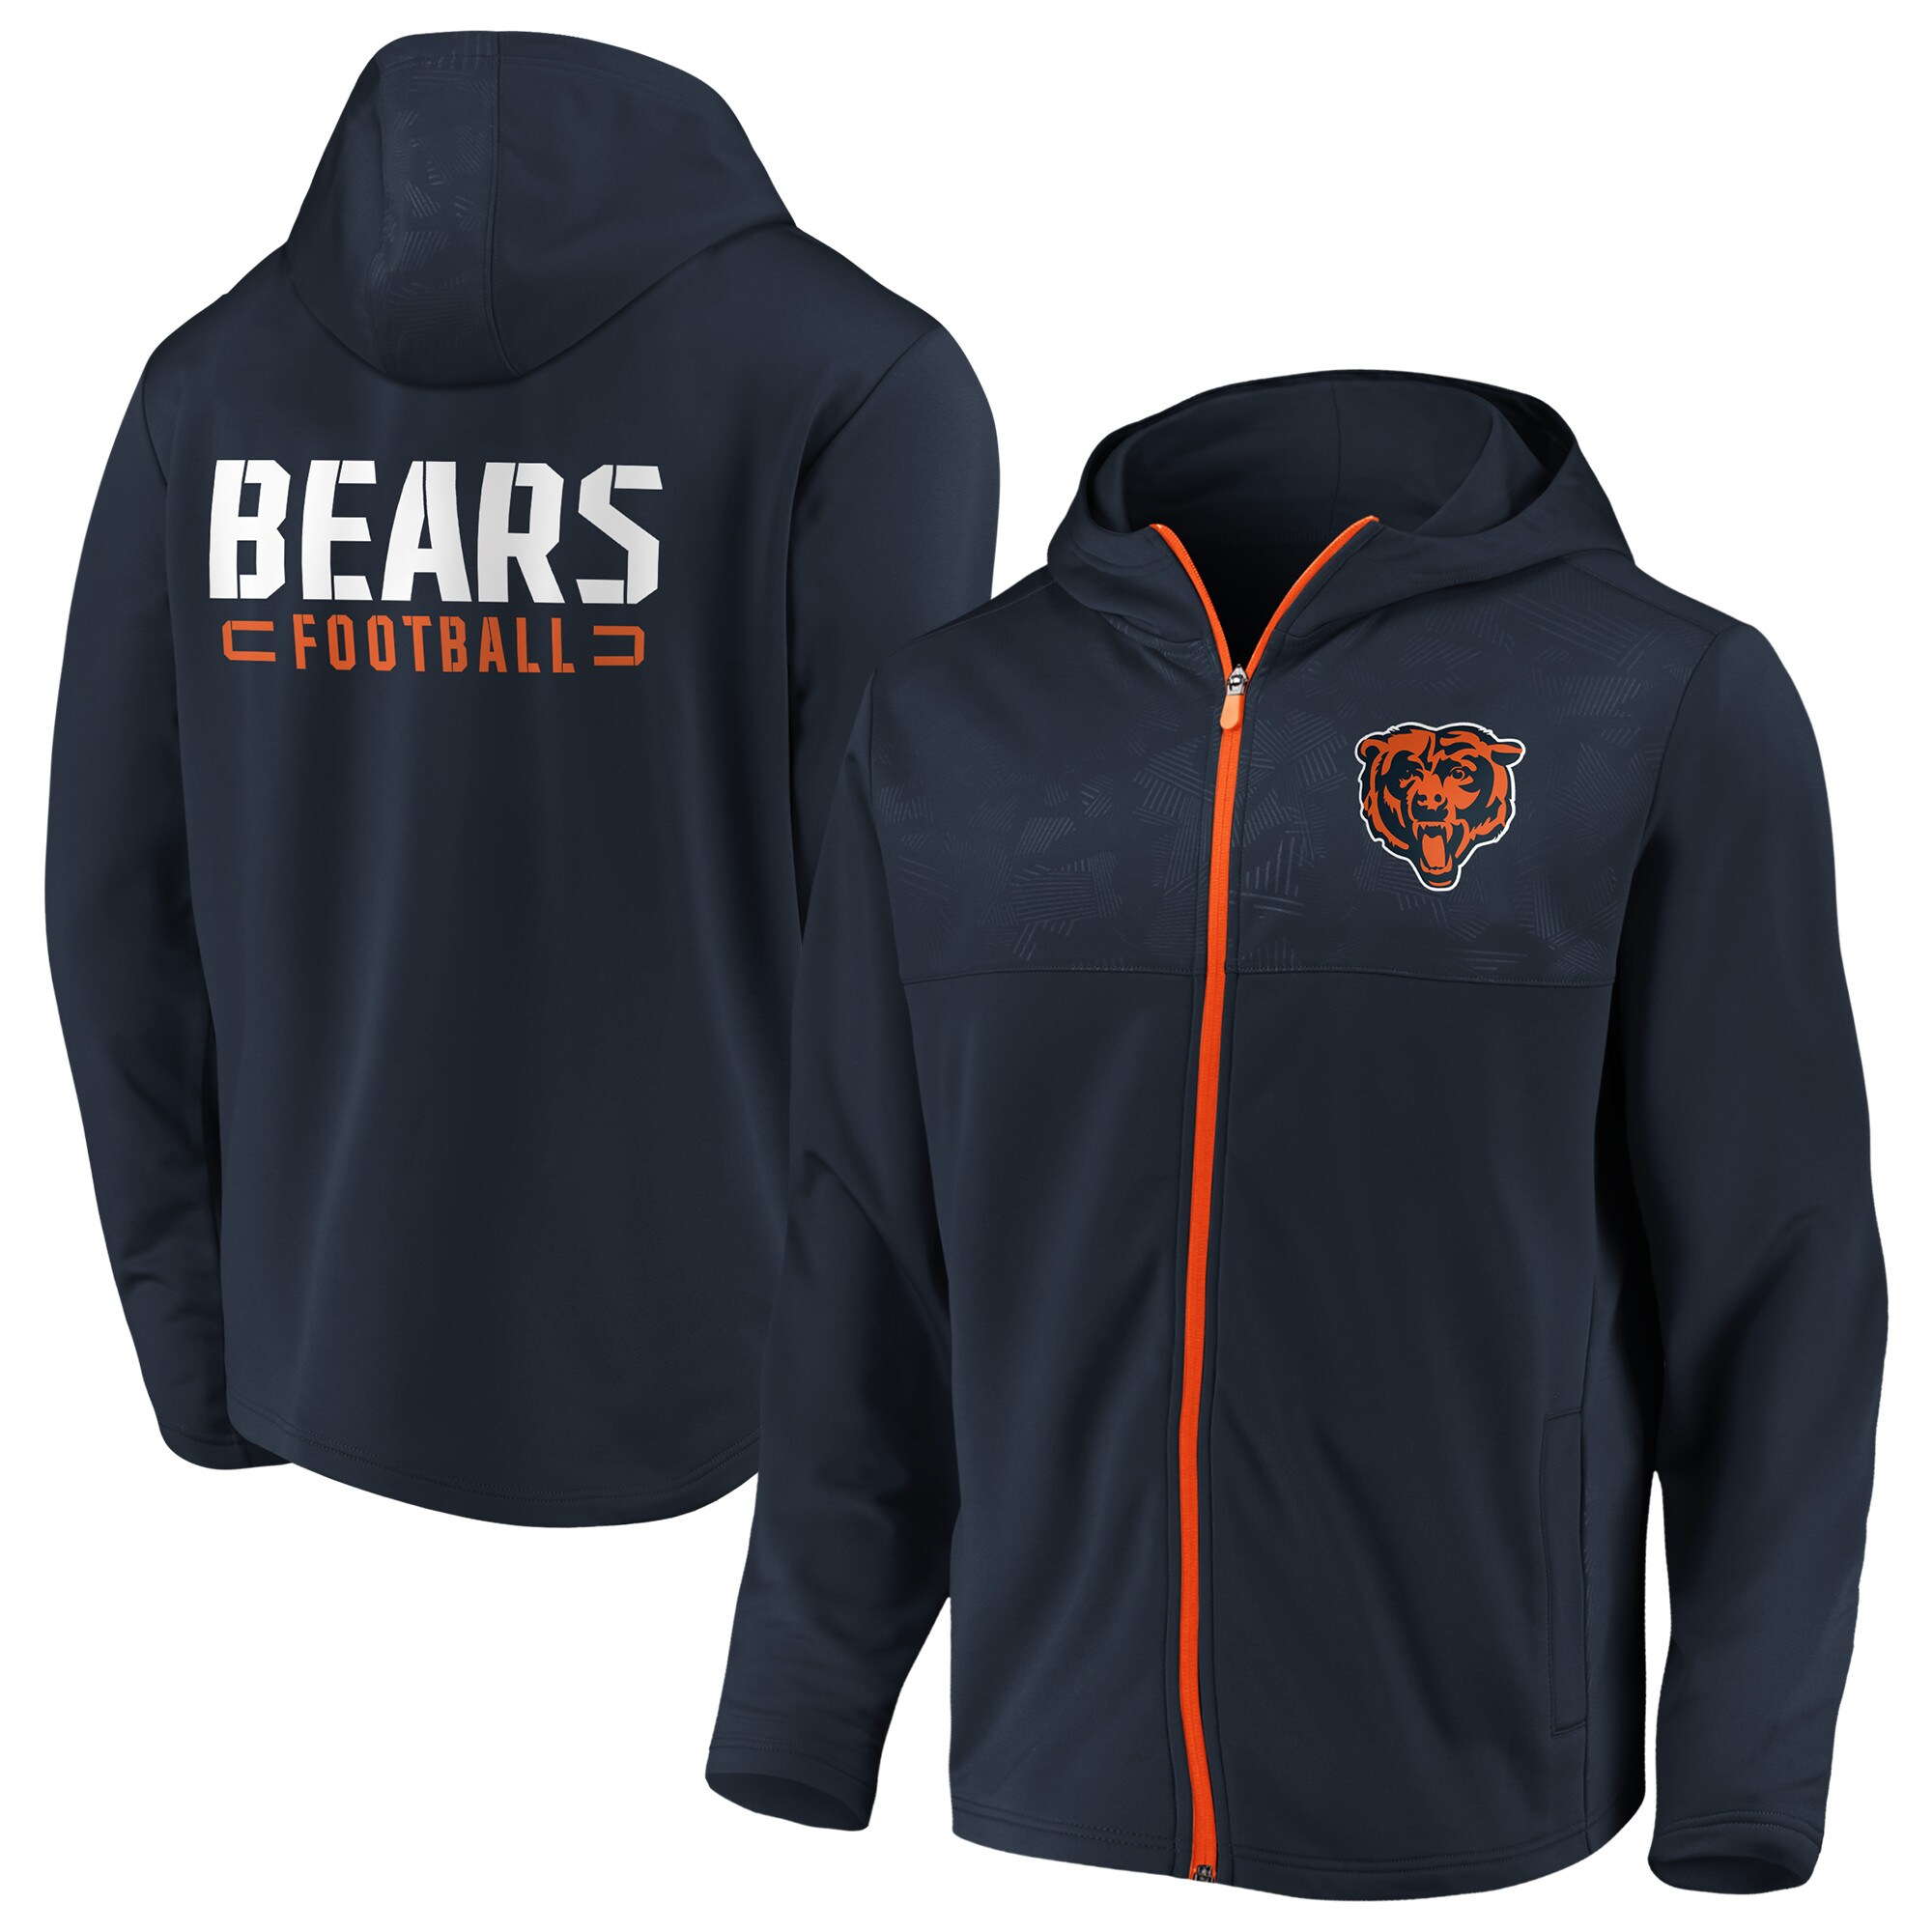 Chicago Bears NFL Pro Line by Fanatics Branded Iconic Defender Mission Primary Full-Zip Hoodie - Navy